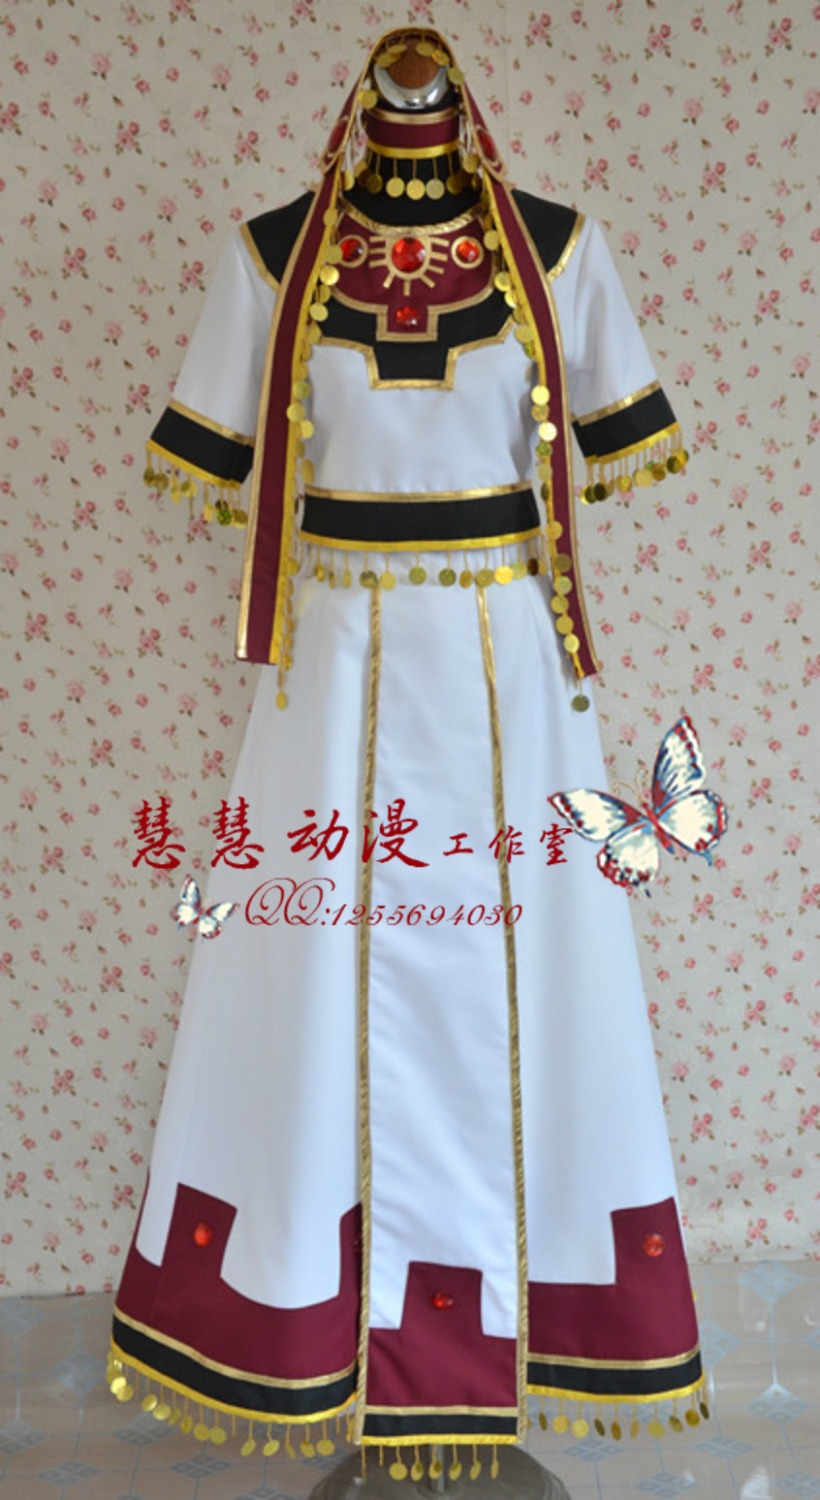 2016 Tsubasa Reservoir Chronicle Sakura Halloween Cosplay Costume Sakura Dress все цены